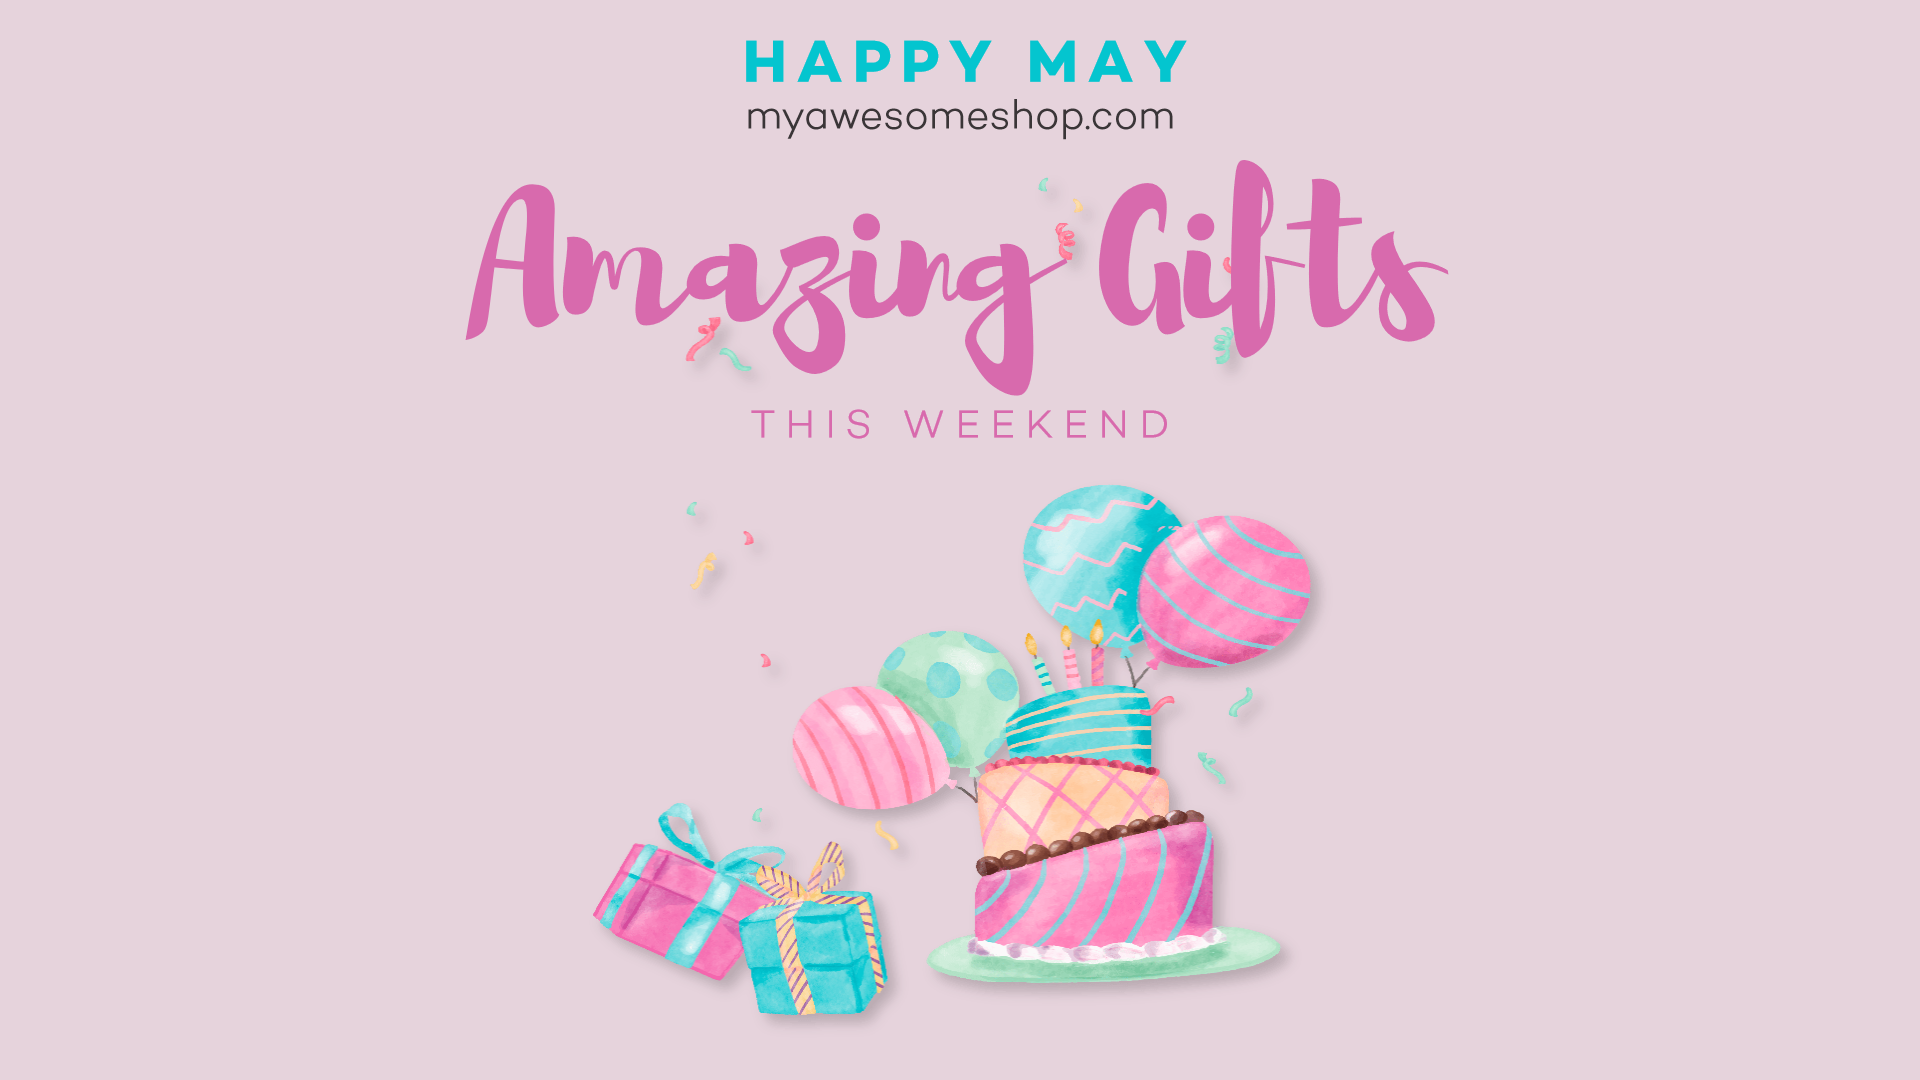 Happy May - Amazing Gifts this Animation  Template